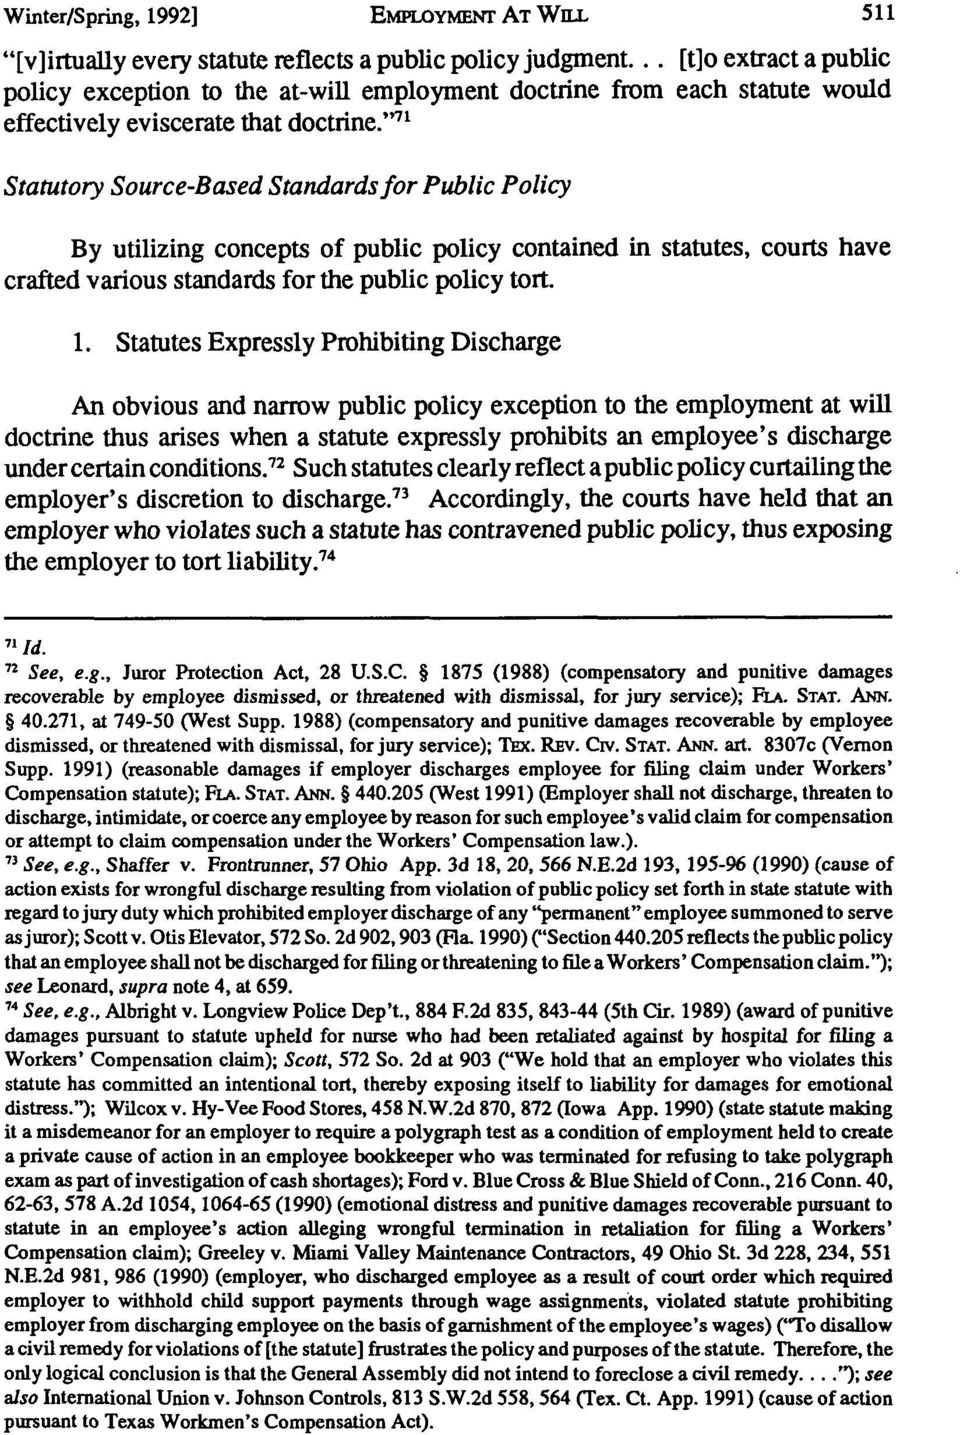 """' Statutory Source-Based Standards for Public Policy By utilizing concepts of public policy contained in statutes, courts have crafted various standards for the public policy tort. 1."